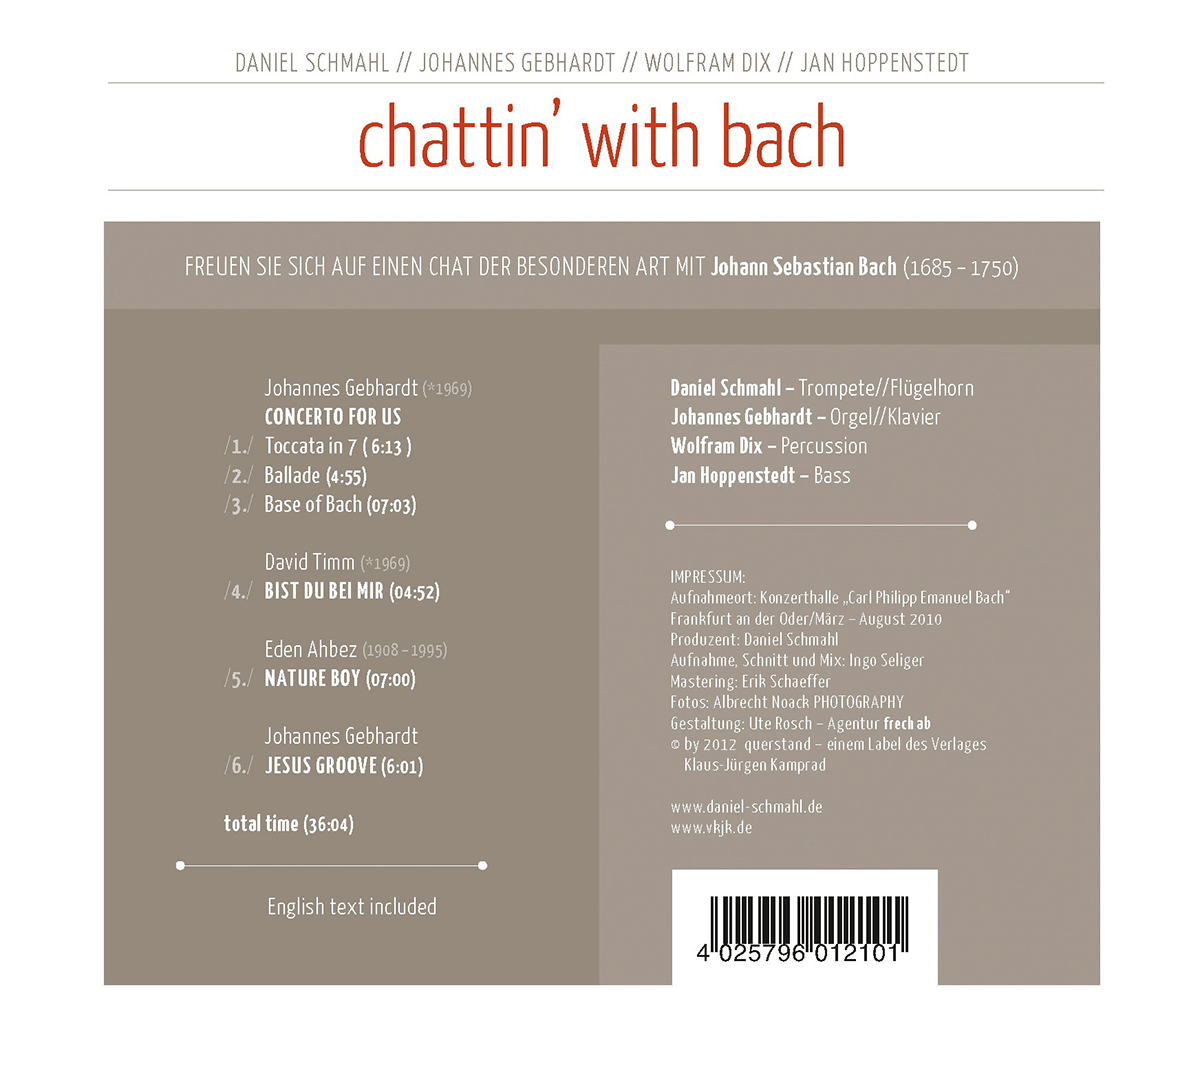 chattin' with bach CD Cover back